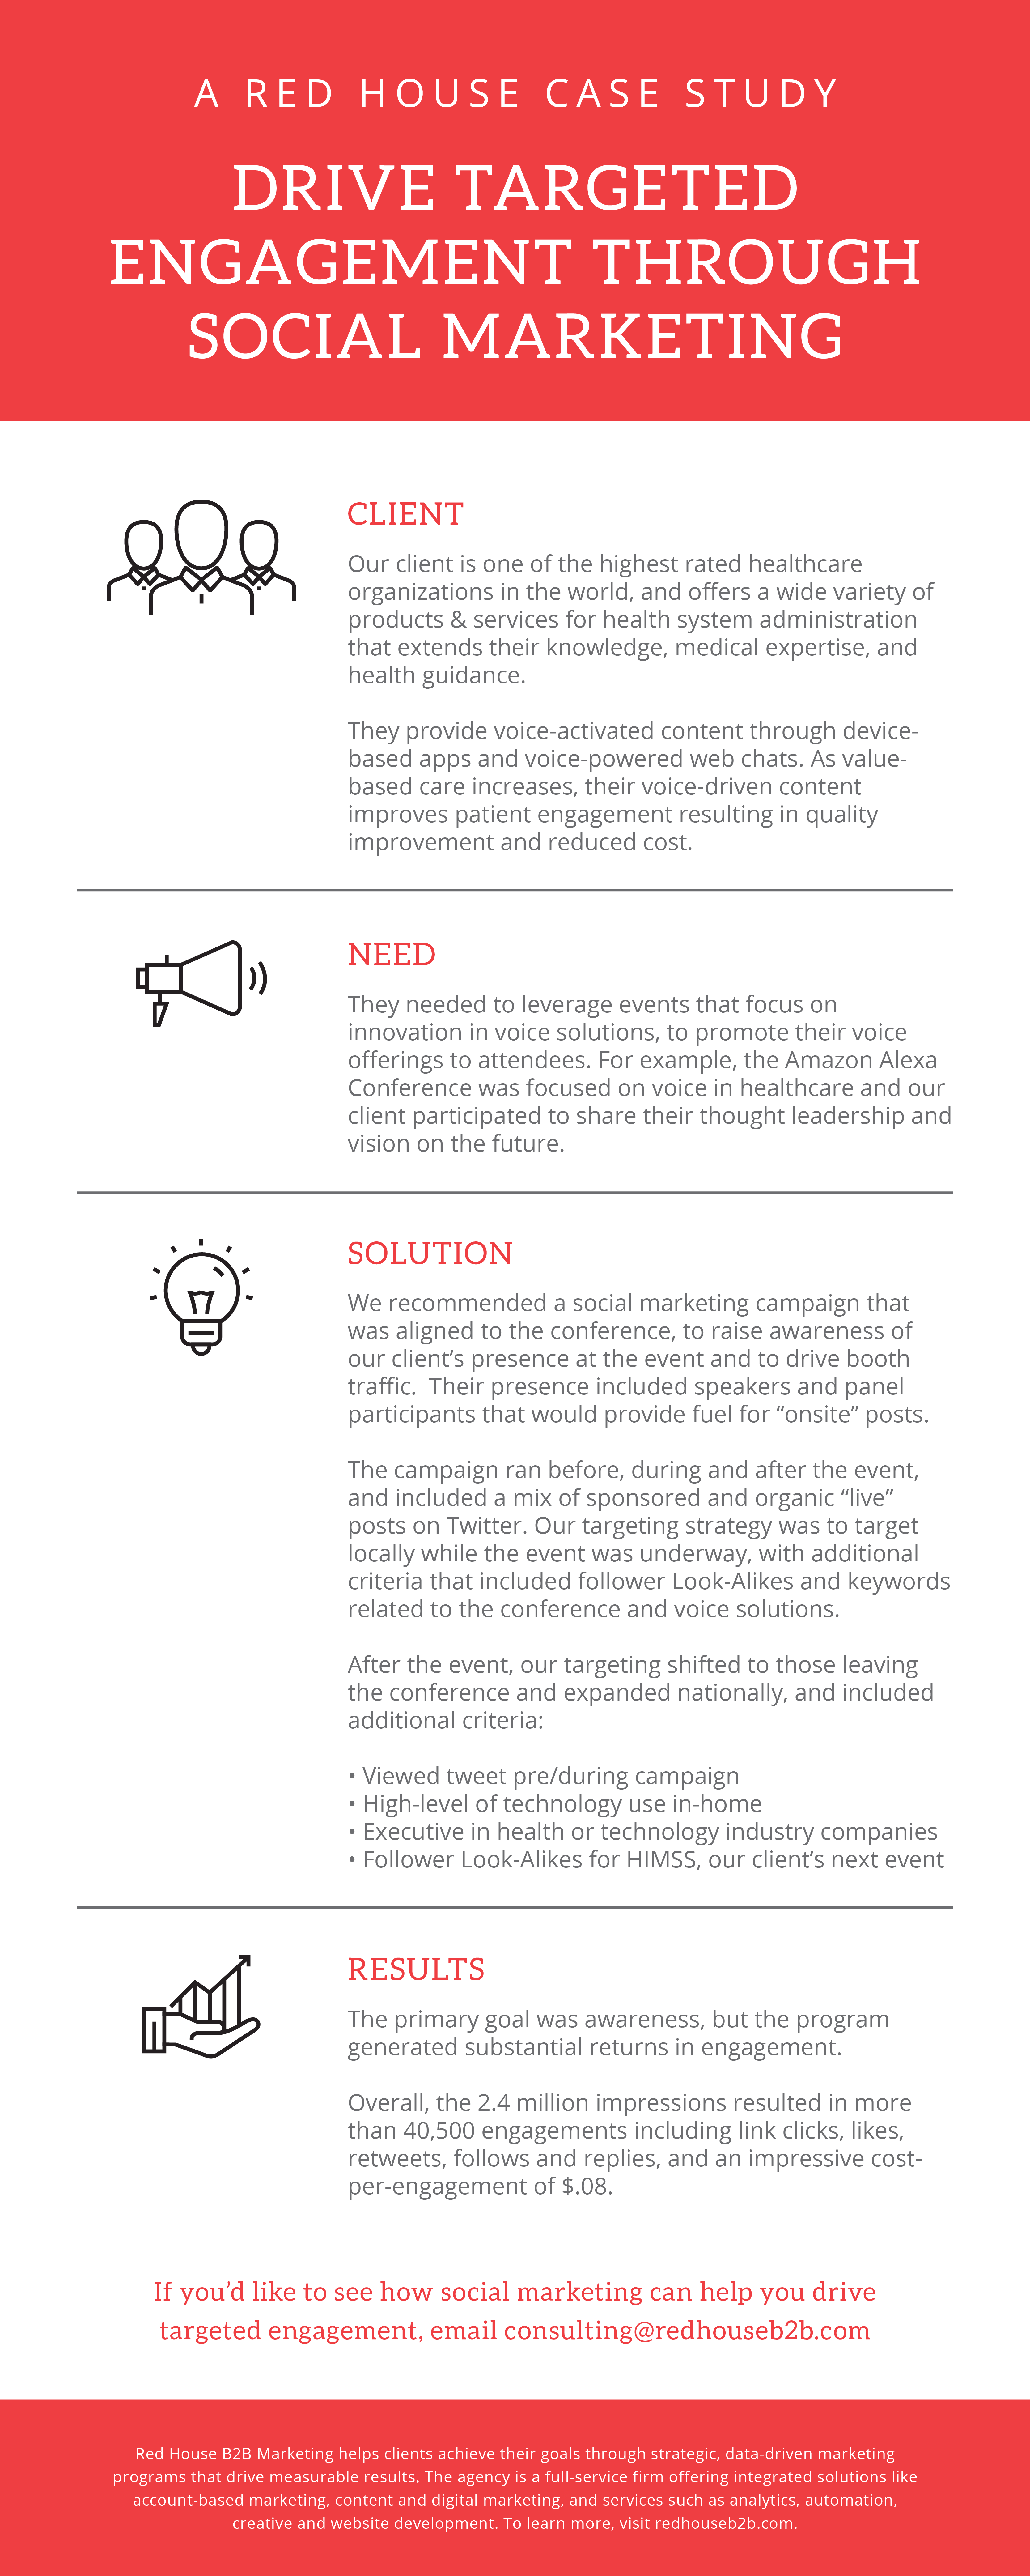 Case Study, Drive Targeted Engagement Through Social Marketing; case study infographic, case study infographic, Red House B2B Marketing